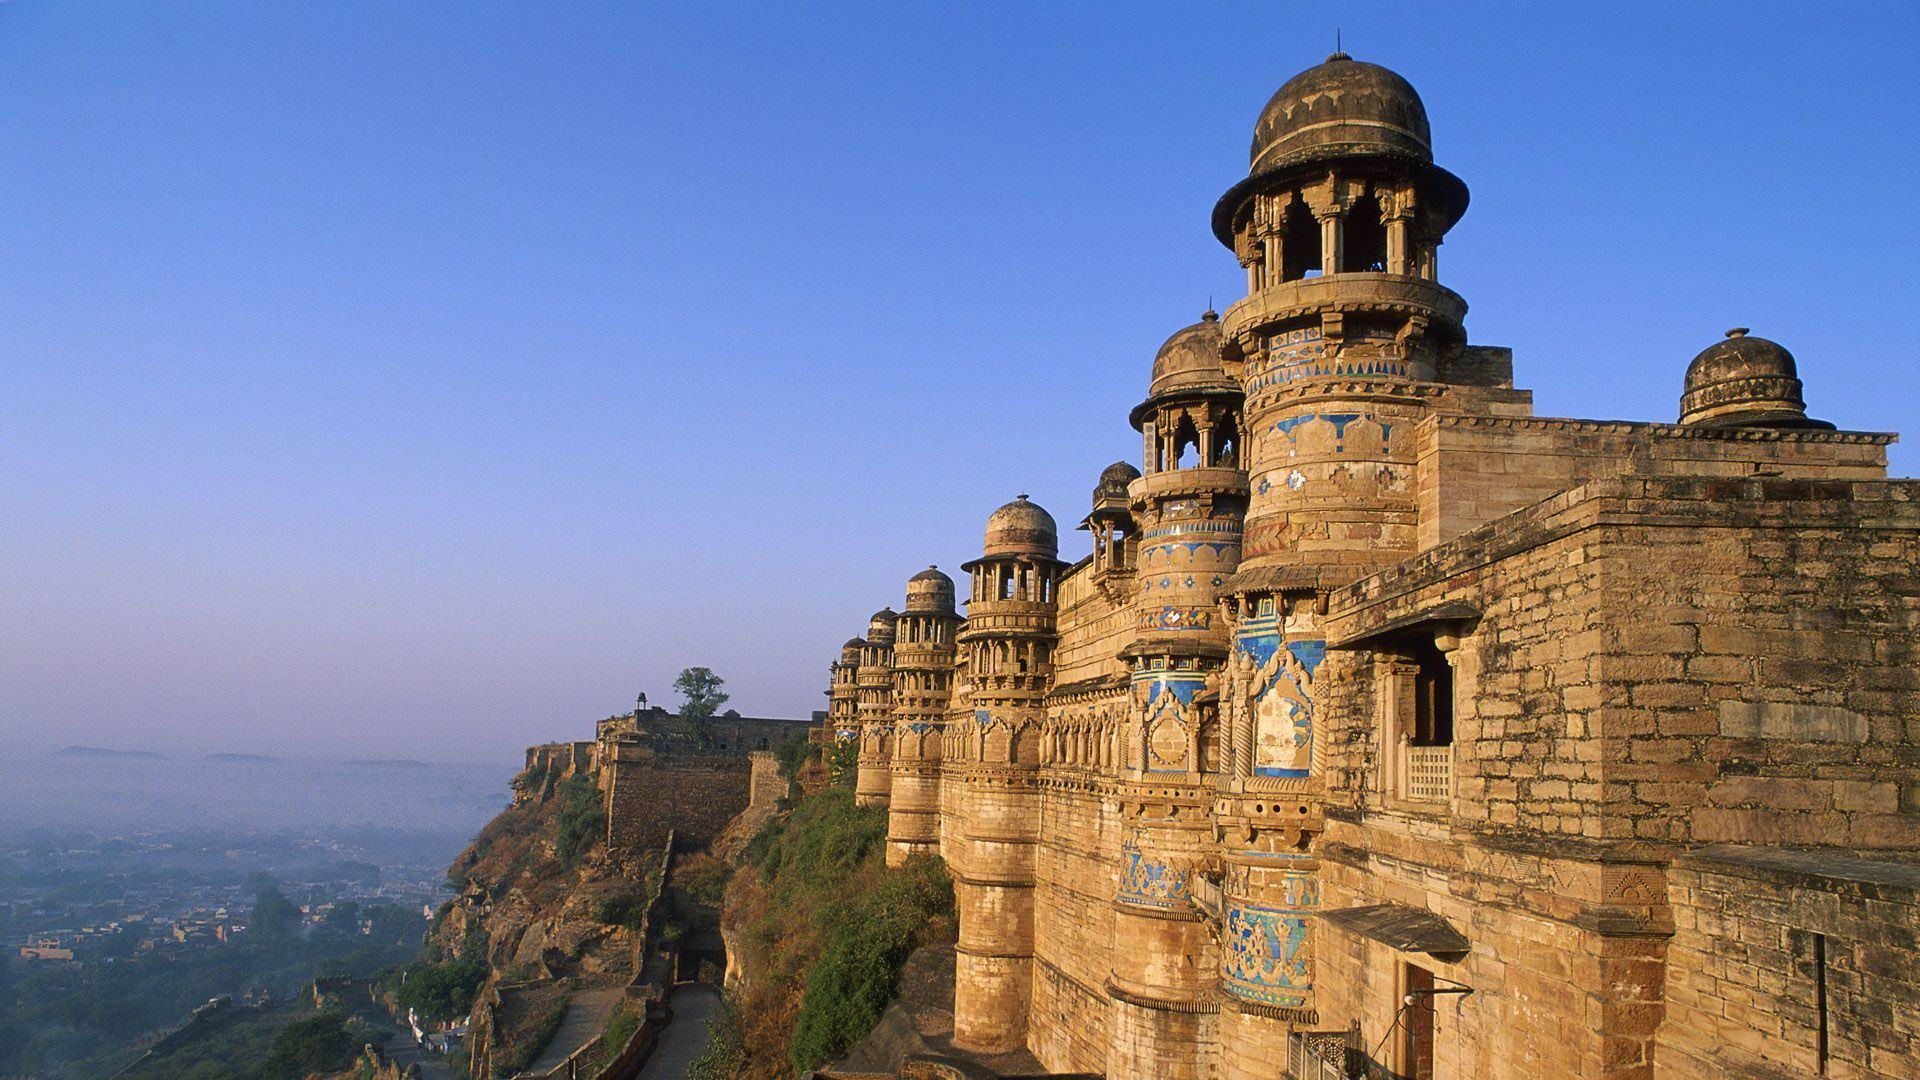 Gwalior Fort India-City Travel Photography Wallpaper